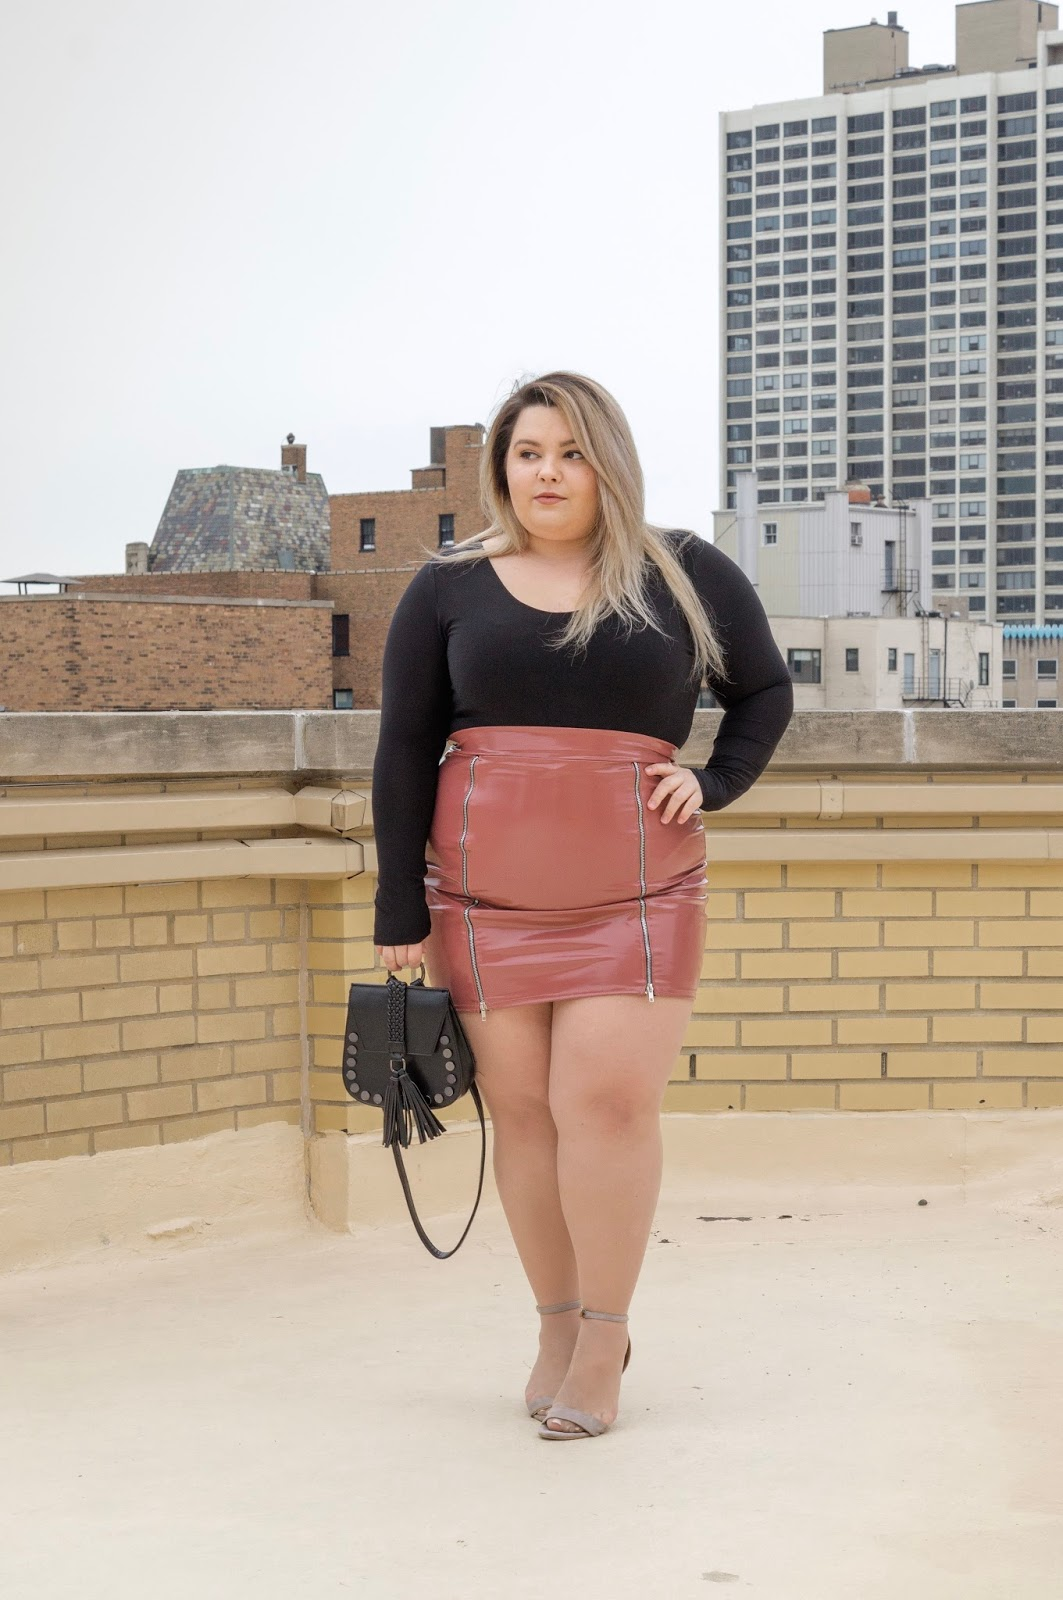 natalie in the city, Chicago fashion blogger, plus size fashion blogger, Chicago style, natalie craig, latex plus size skirt, plus size leather skirt, zipper skirt, plus size body suits, pretty little thing, affordable plus size fashion, embrace your curves, eff your beauty standards, plus model magazine